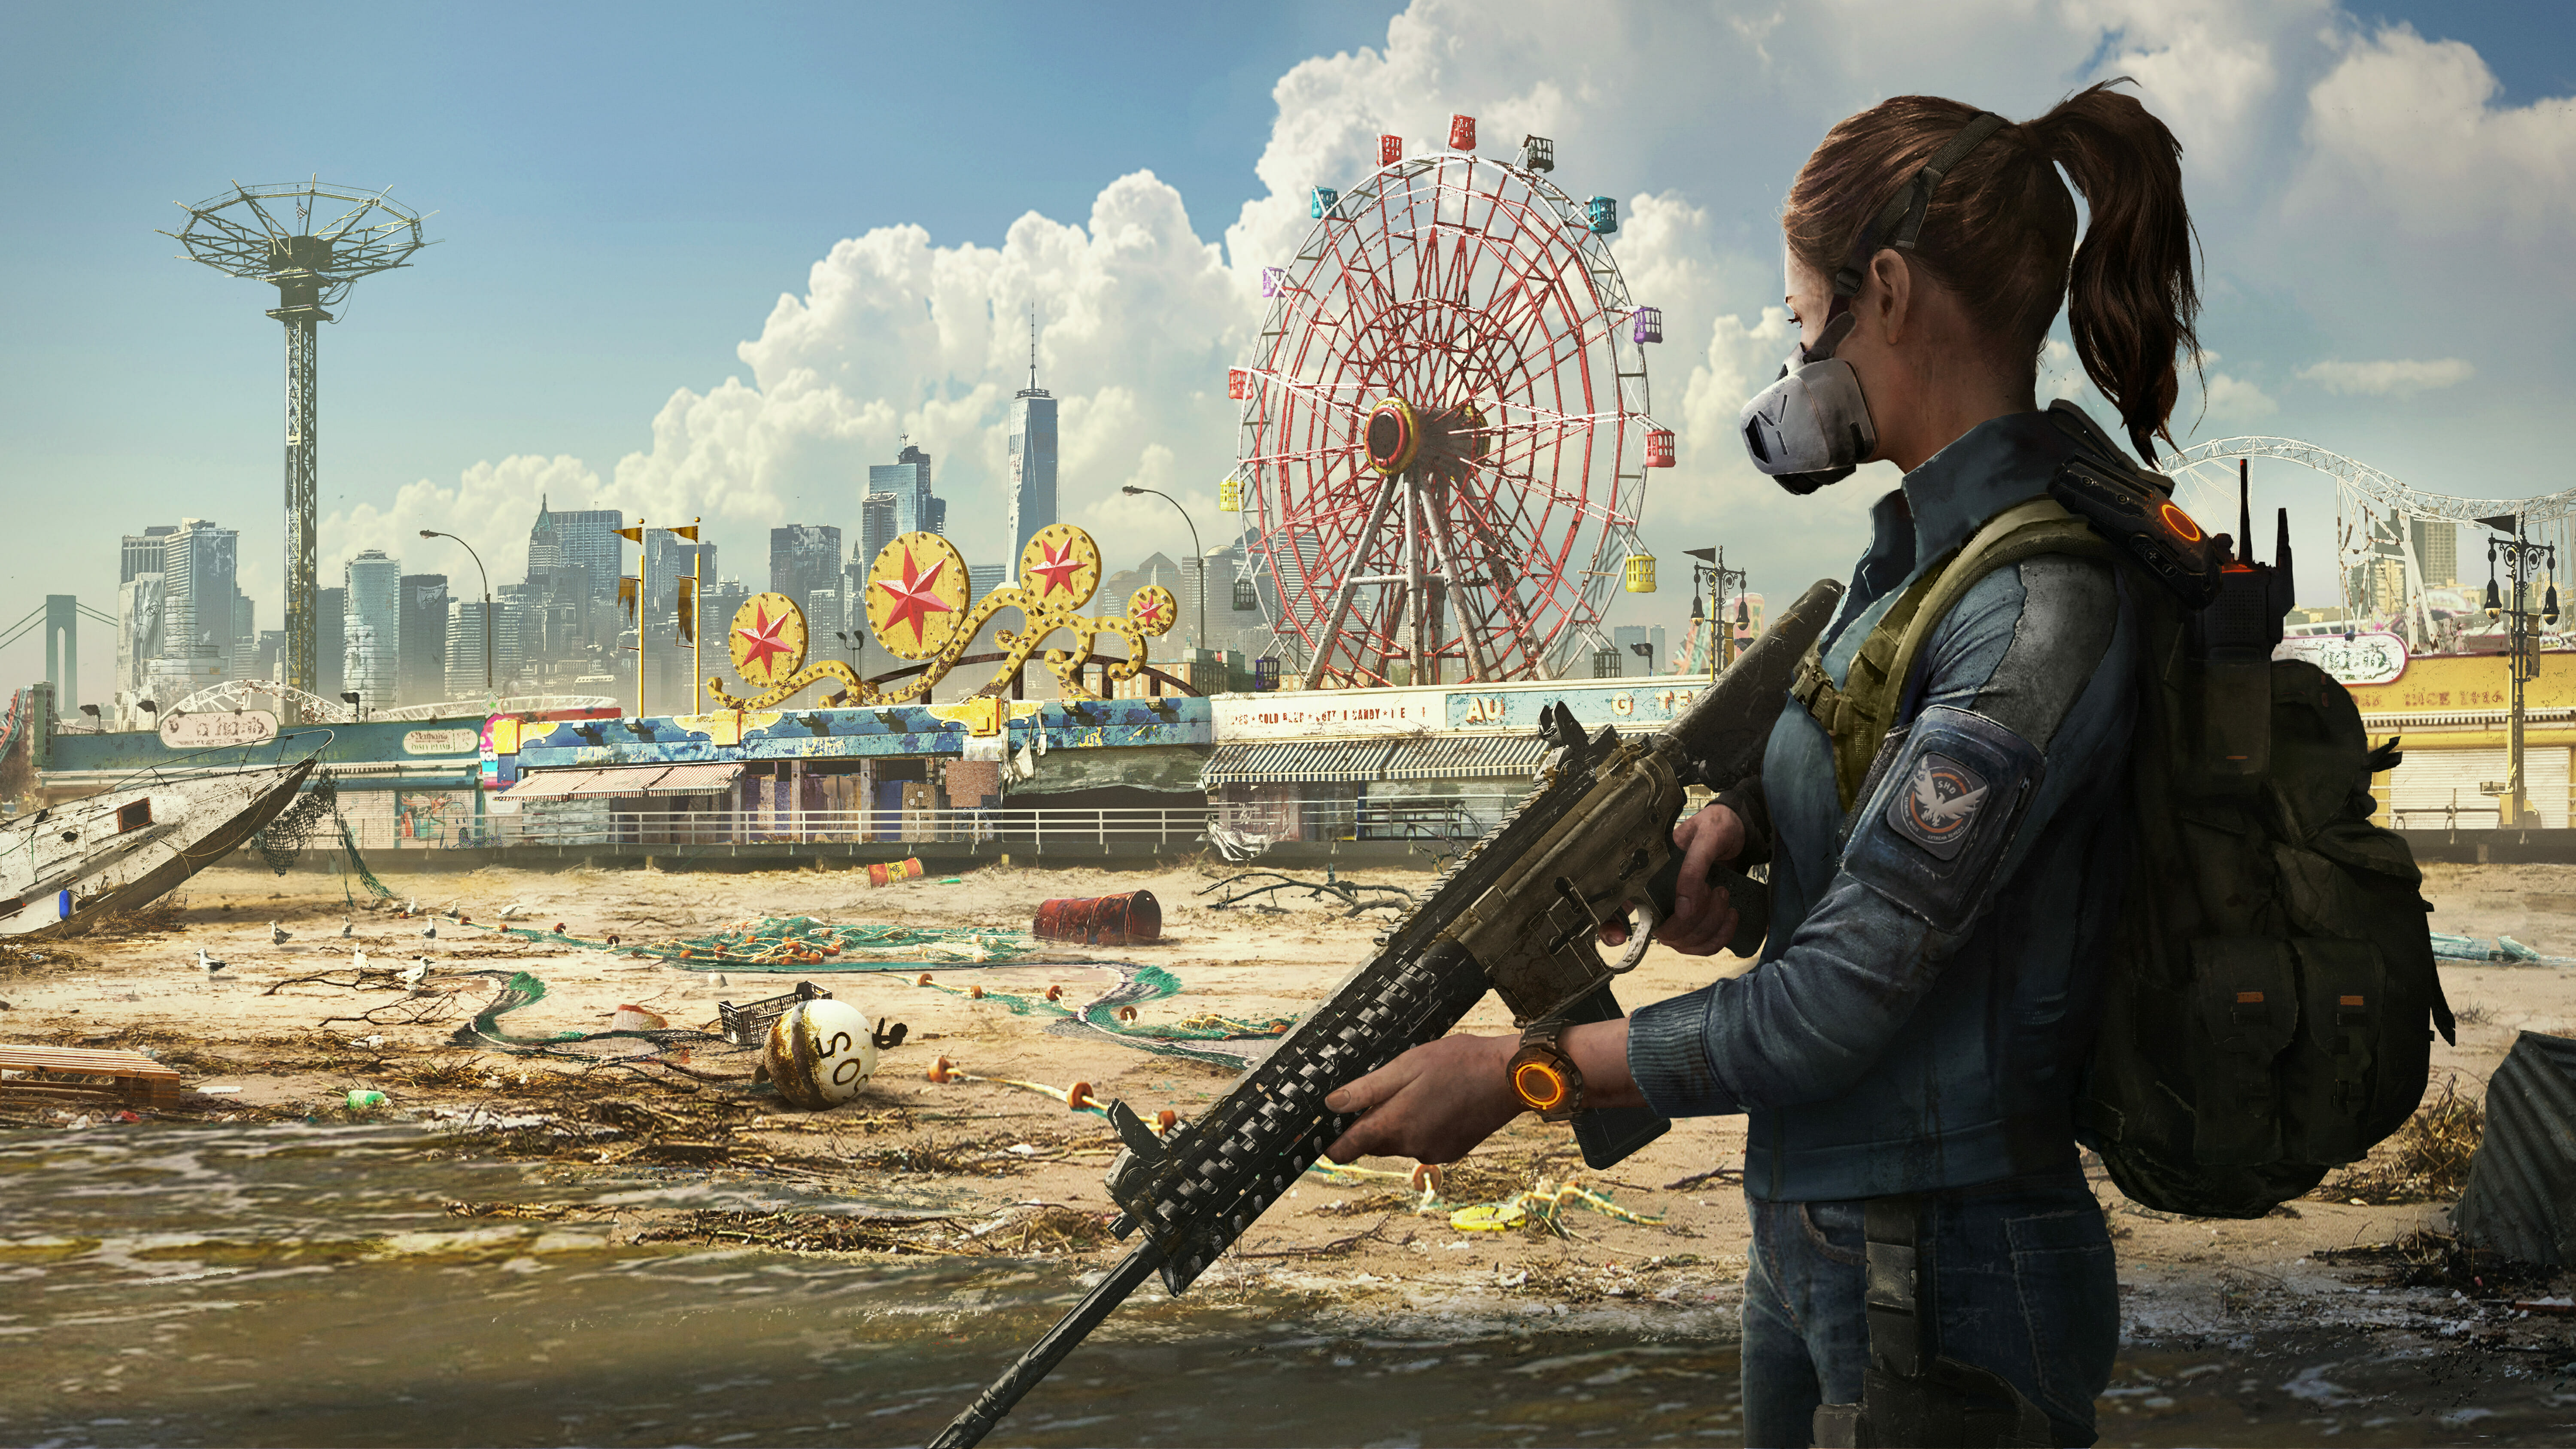 The Division 2 Episode 3 Wallpaper Hd Games 4k Wallpapers Images